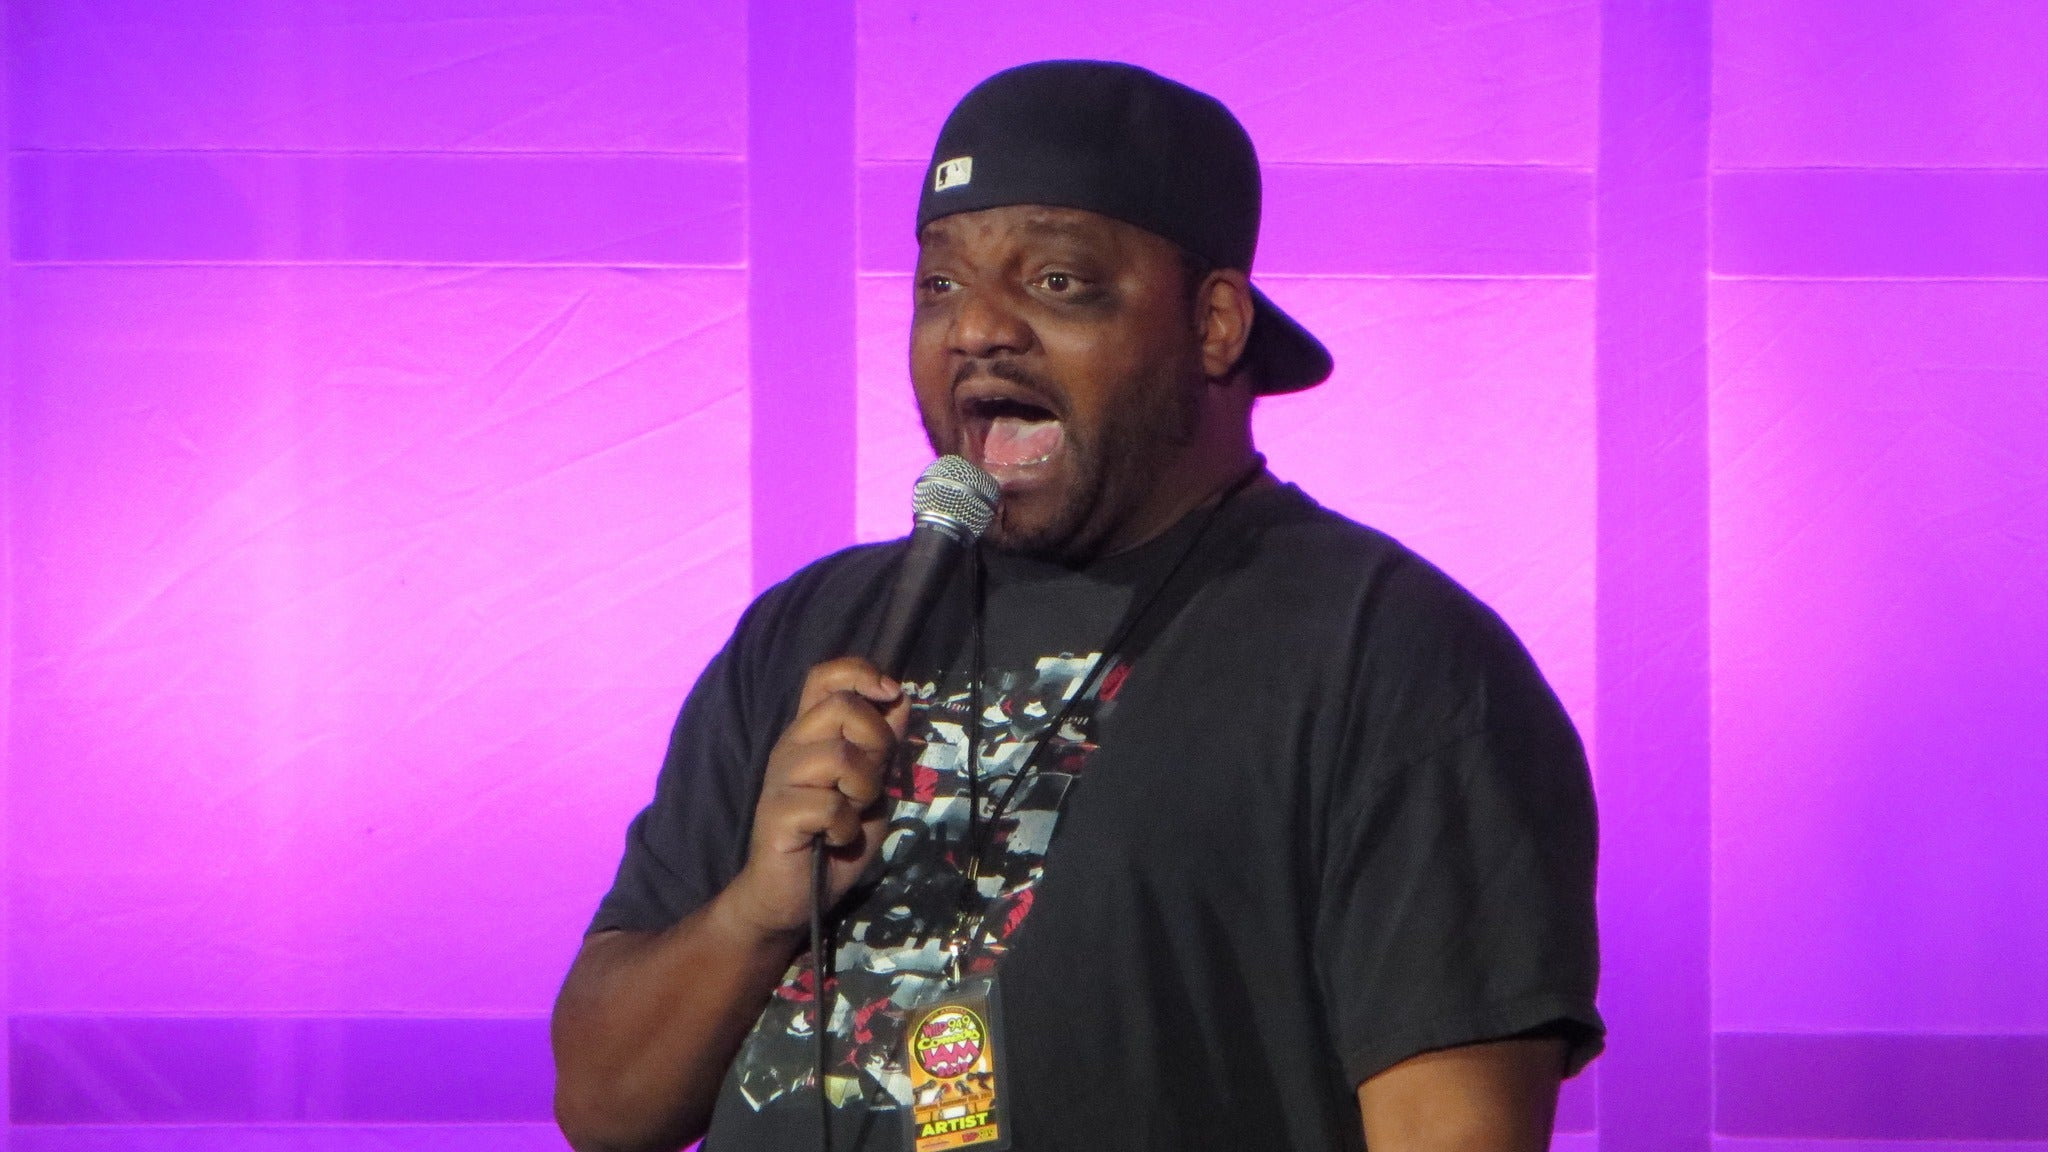 Aries Spears at Ontario Improv